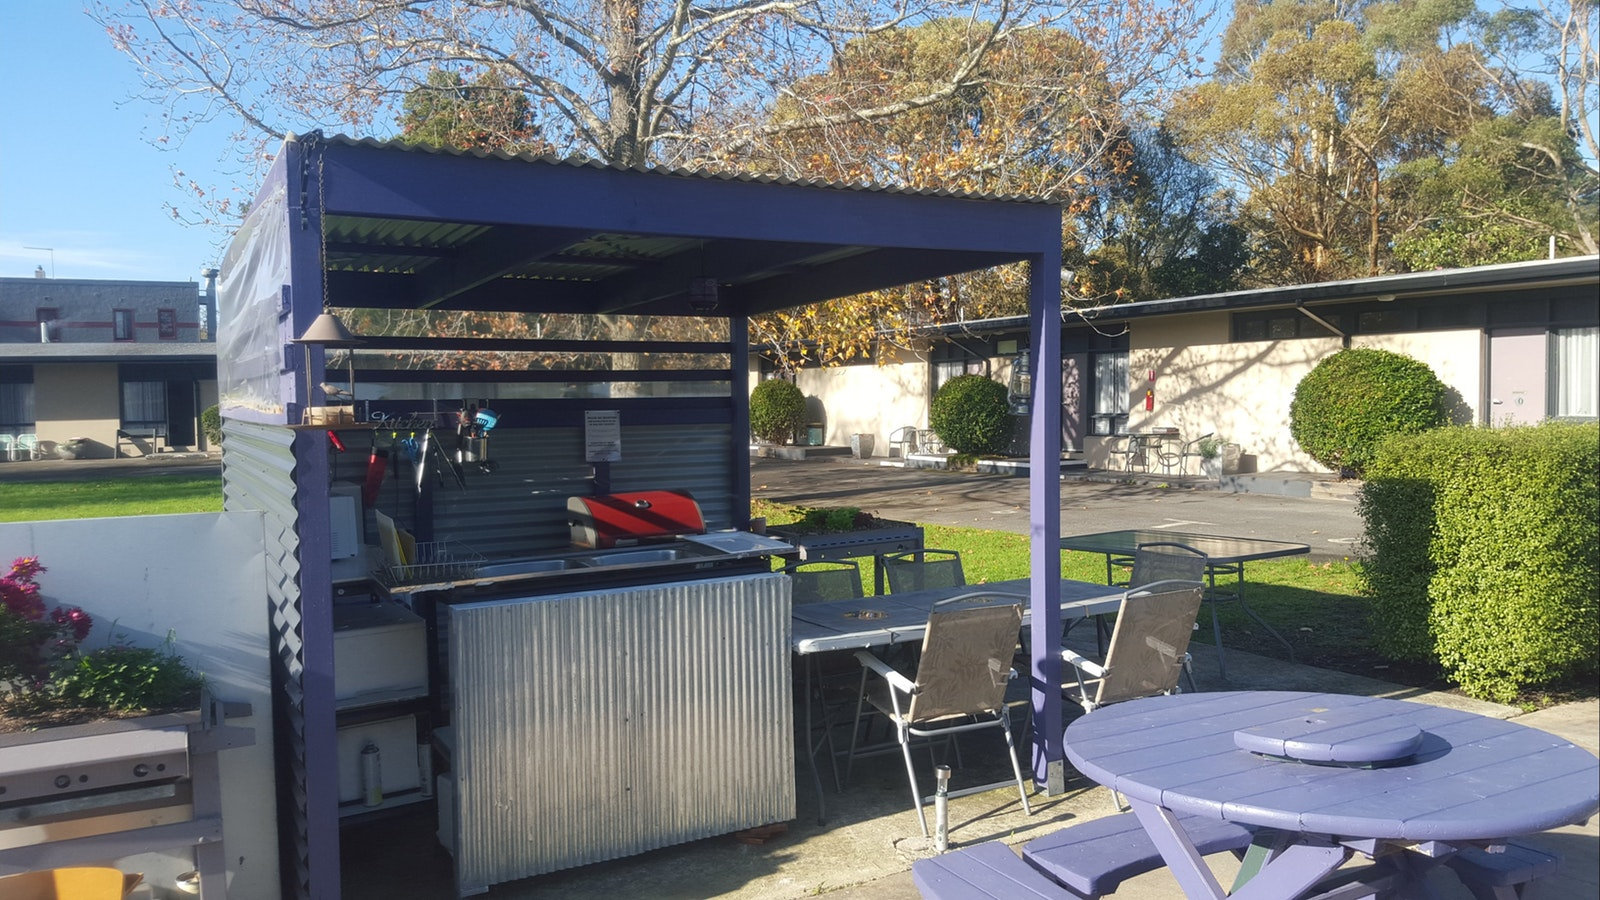 Outdoor kitchen and barbecue facilities